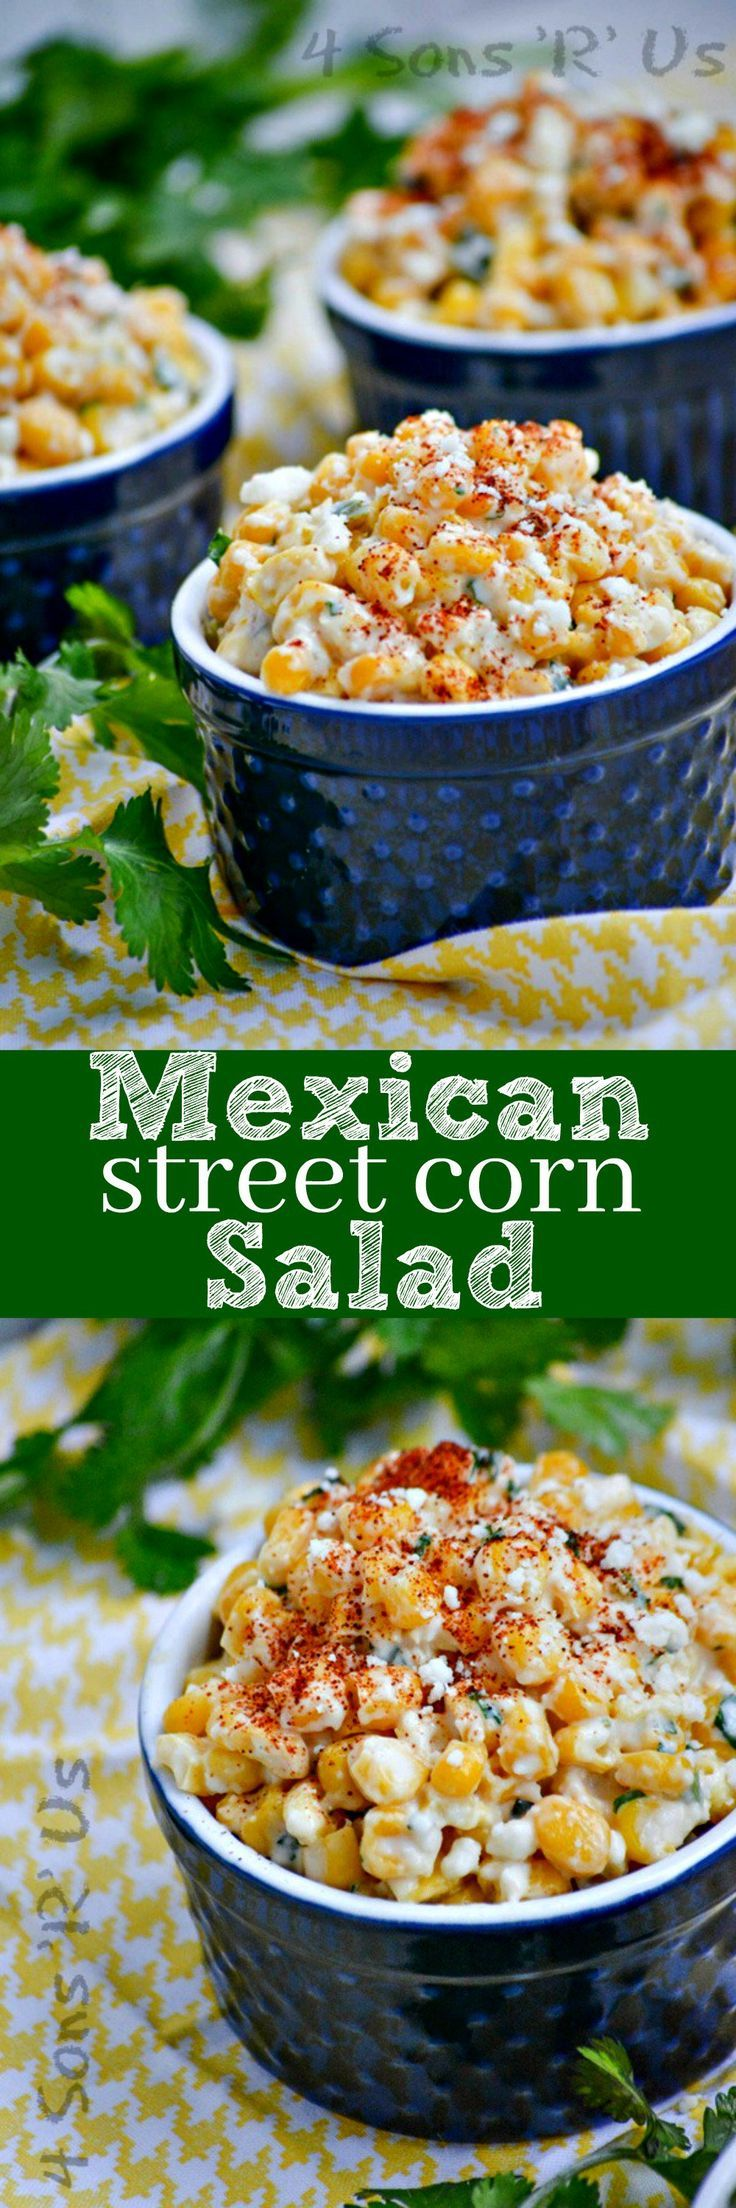 A beautiful blend of sweet and spicy, this Mexican Street Corn Salad is made off of the cob and finished off with a dash of smoky, to make it truly out of this world.(Vegetarian Mexican Recipes)